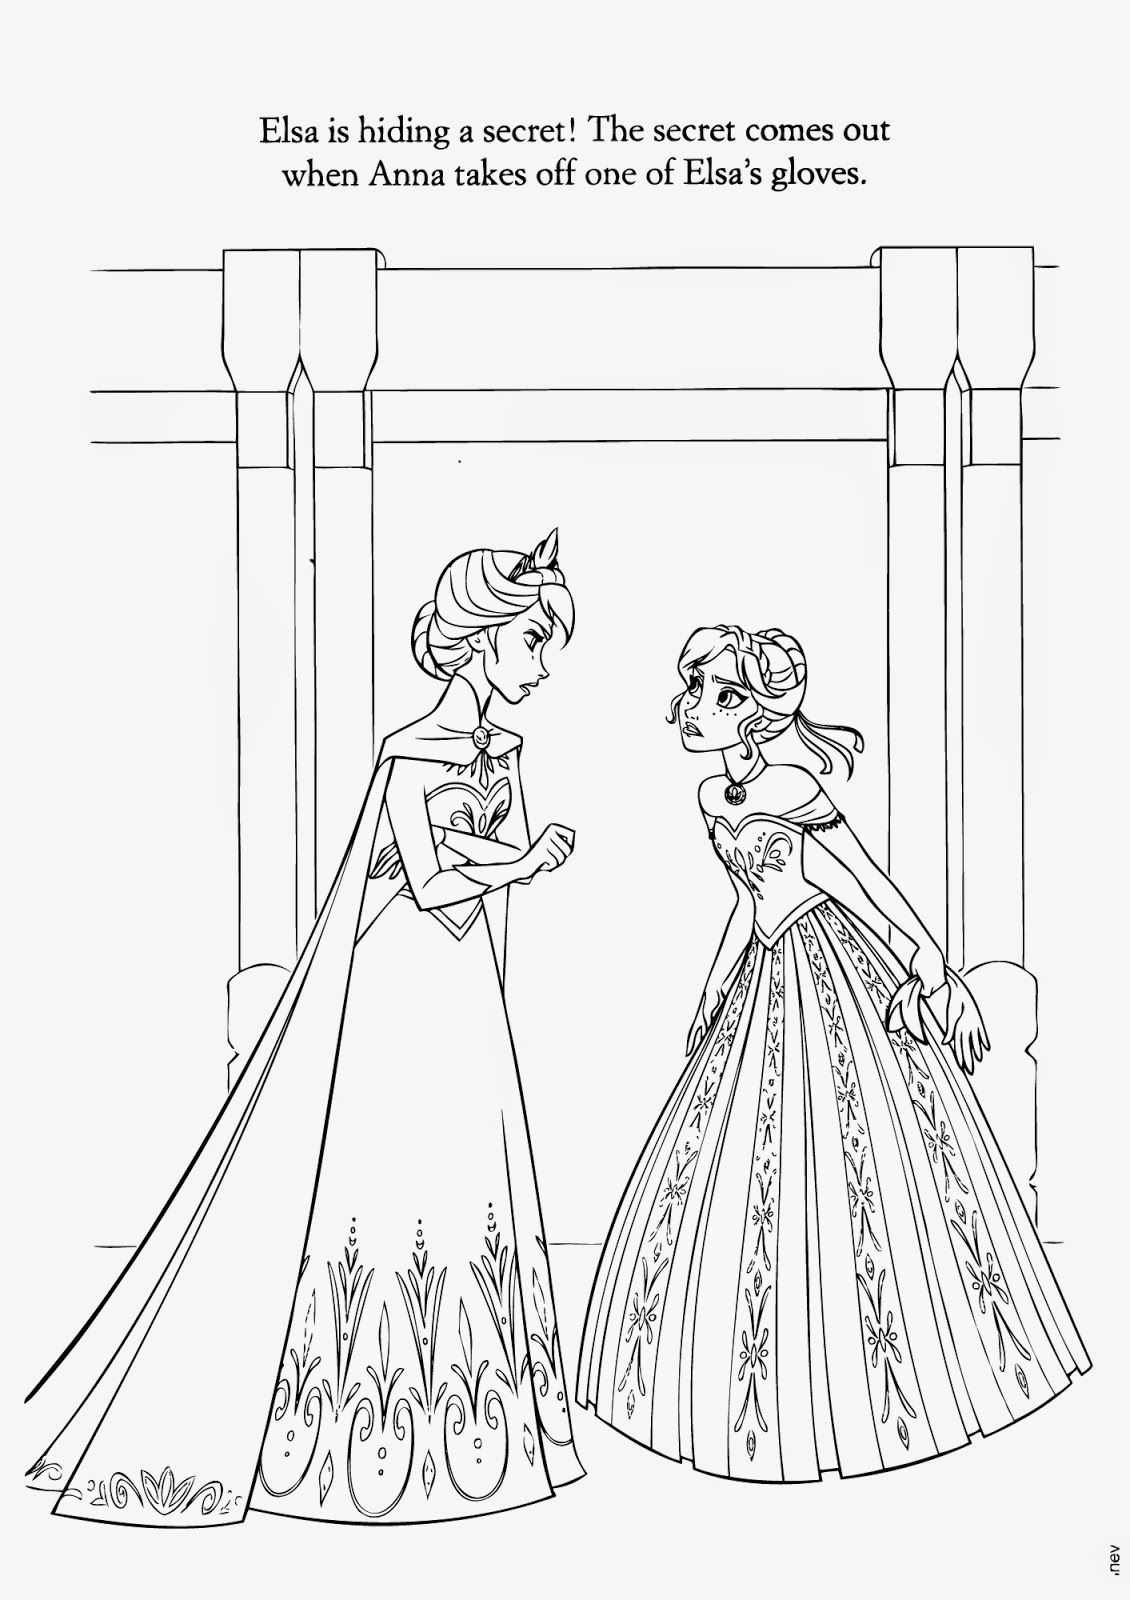 Find 15 Beautiful Frozen Disney Coloring Pages Free With All Of The Character Frozen I Frozen Coloring Disney Coloring Pages Printables Frozen Coloring Pages